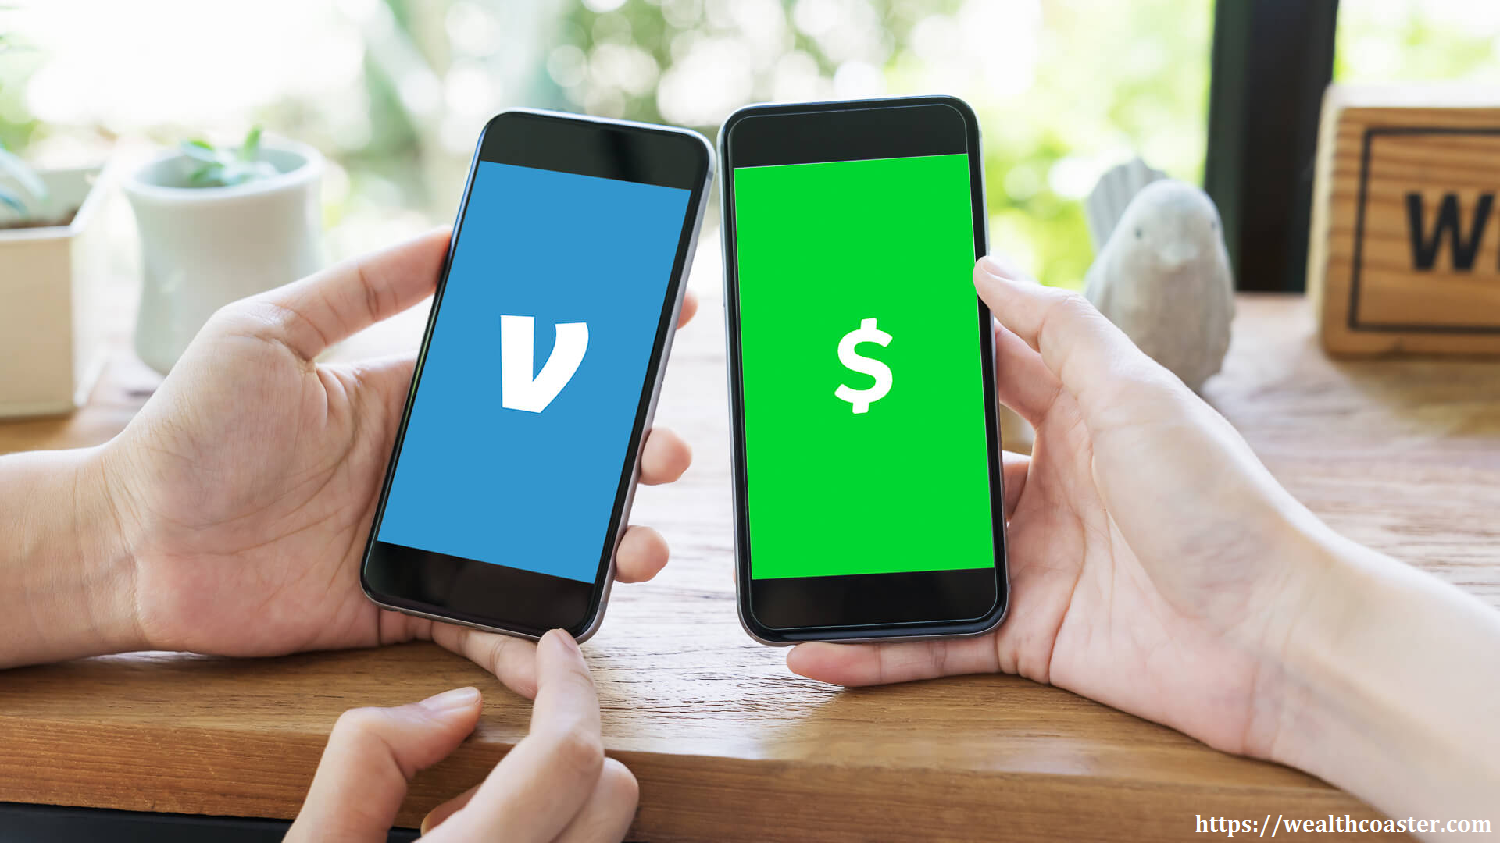 Cash App Vs Venmo: What's The Difference